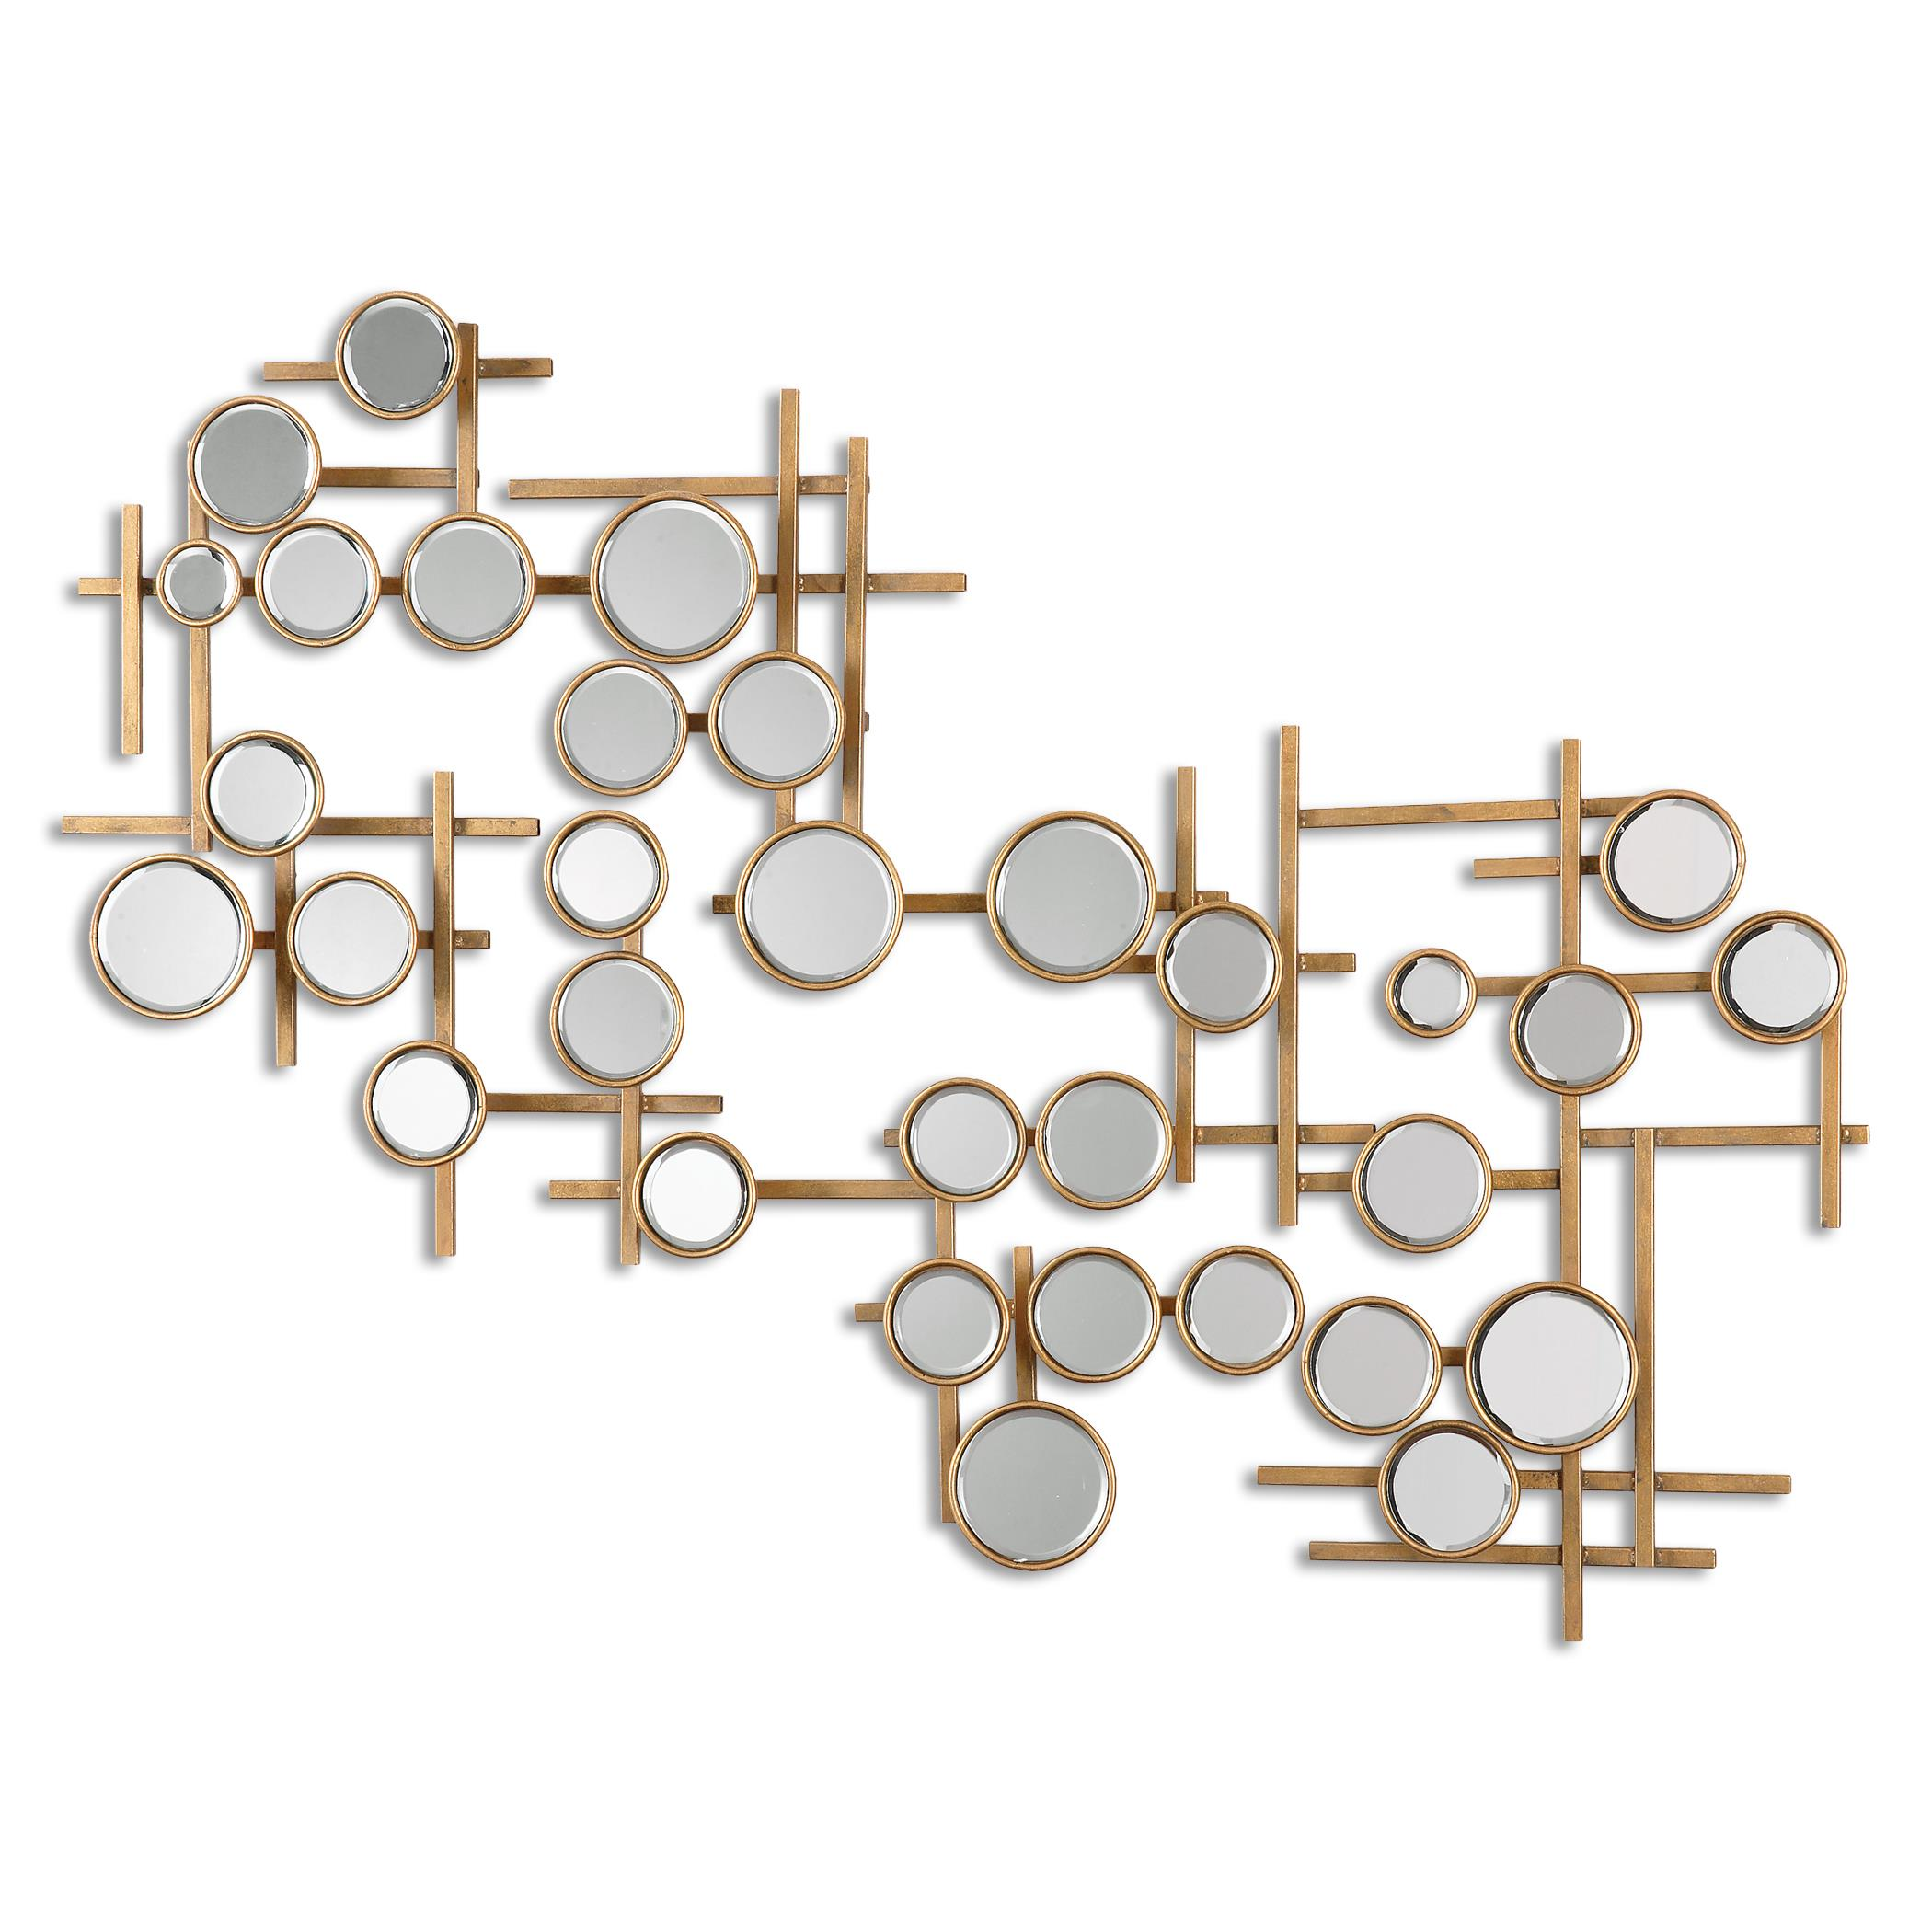 Uttermost Mirrors Britton Mirrored Wall Art - Item Number: 08138